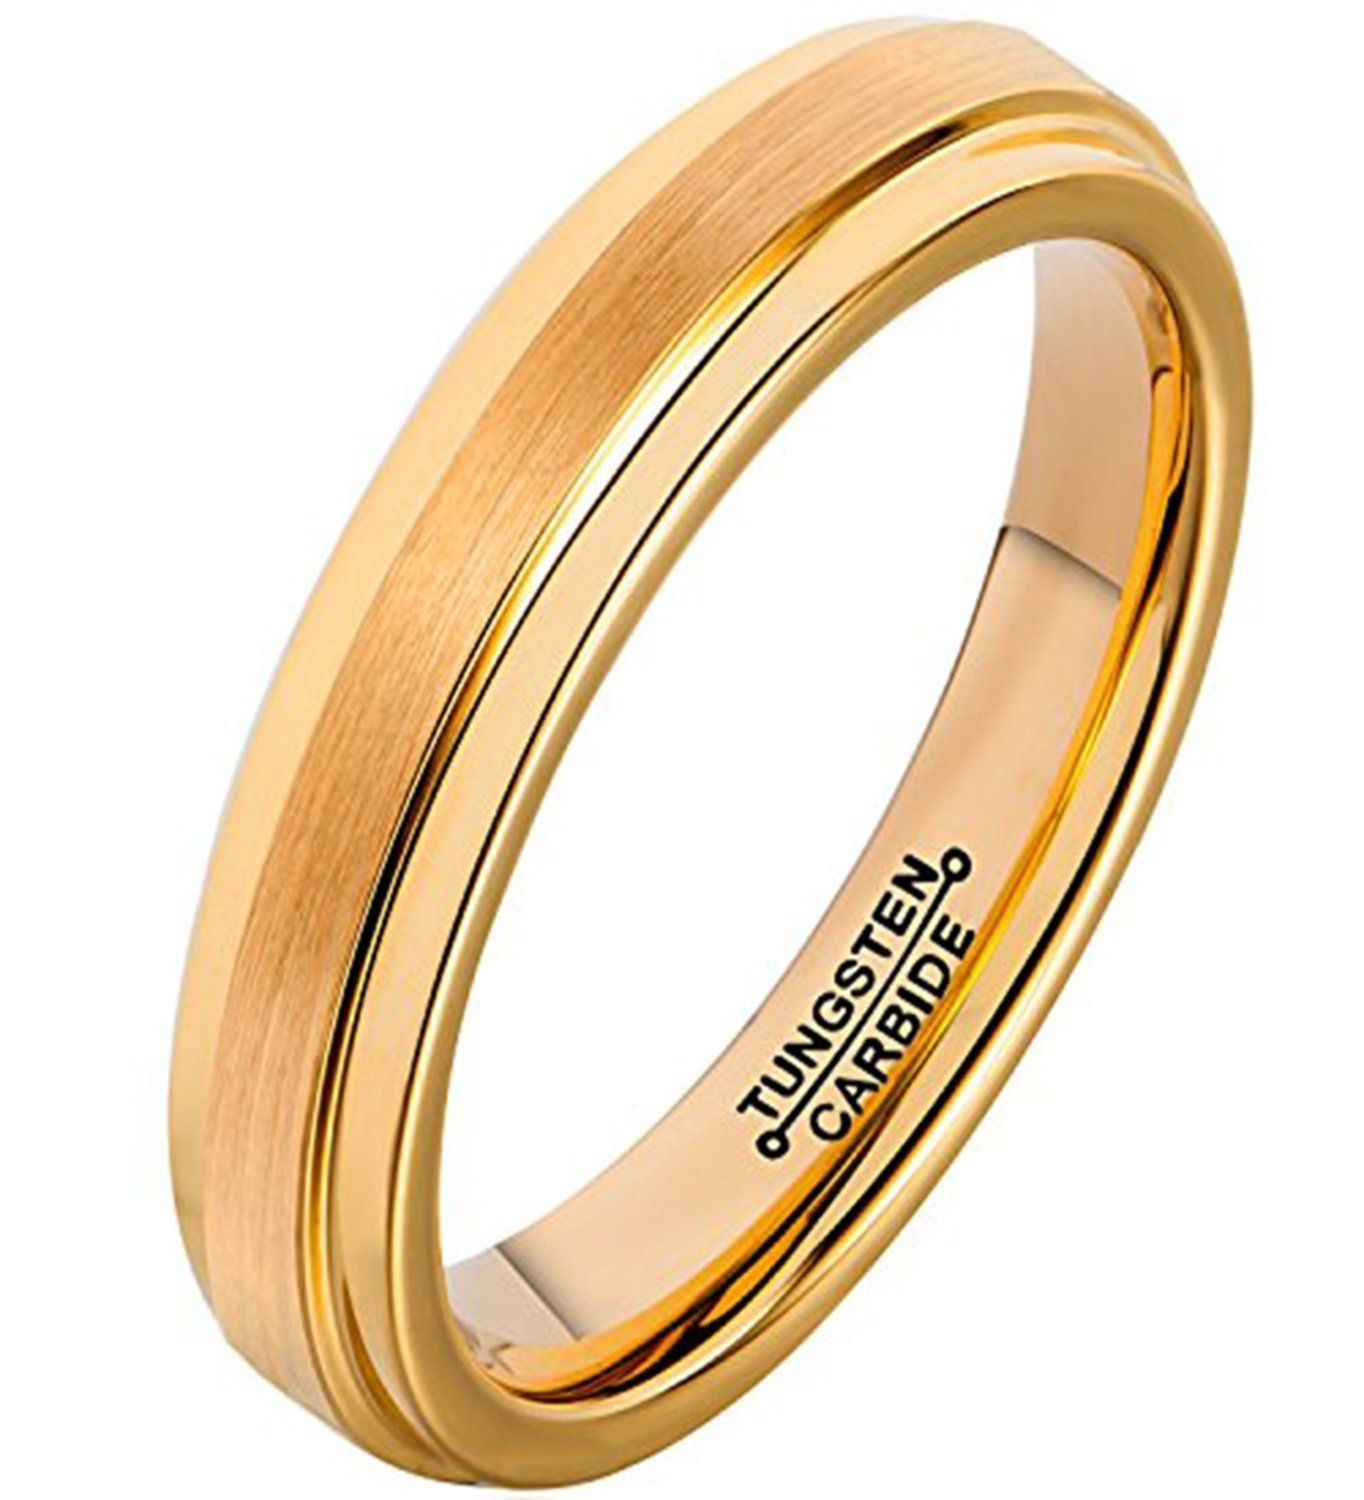 Primary image for 4mm 18K Gold Plated Tungsten Ring Wedding Band Comfort Fit; 4-16 & Half